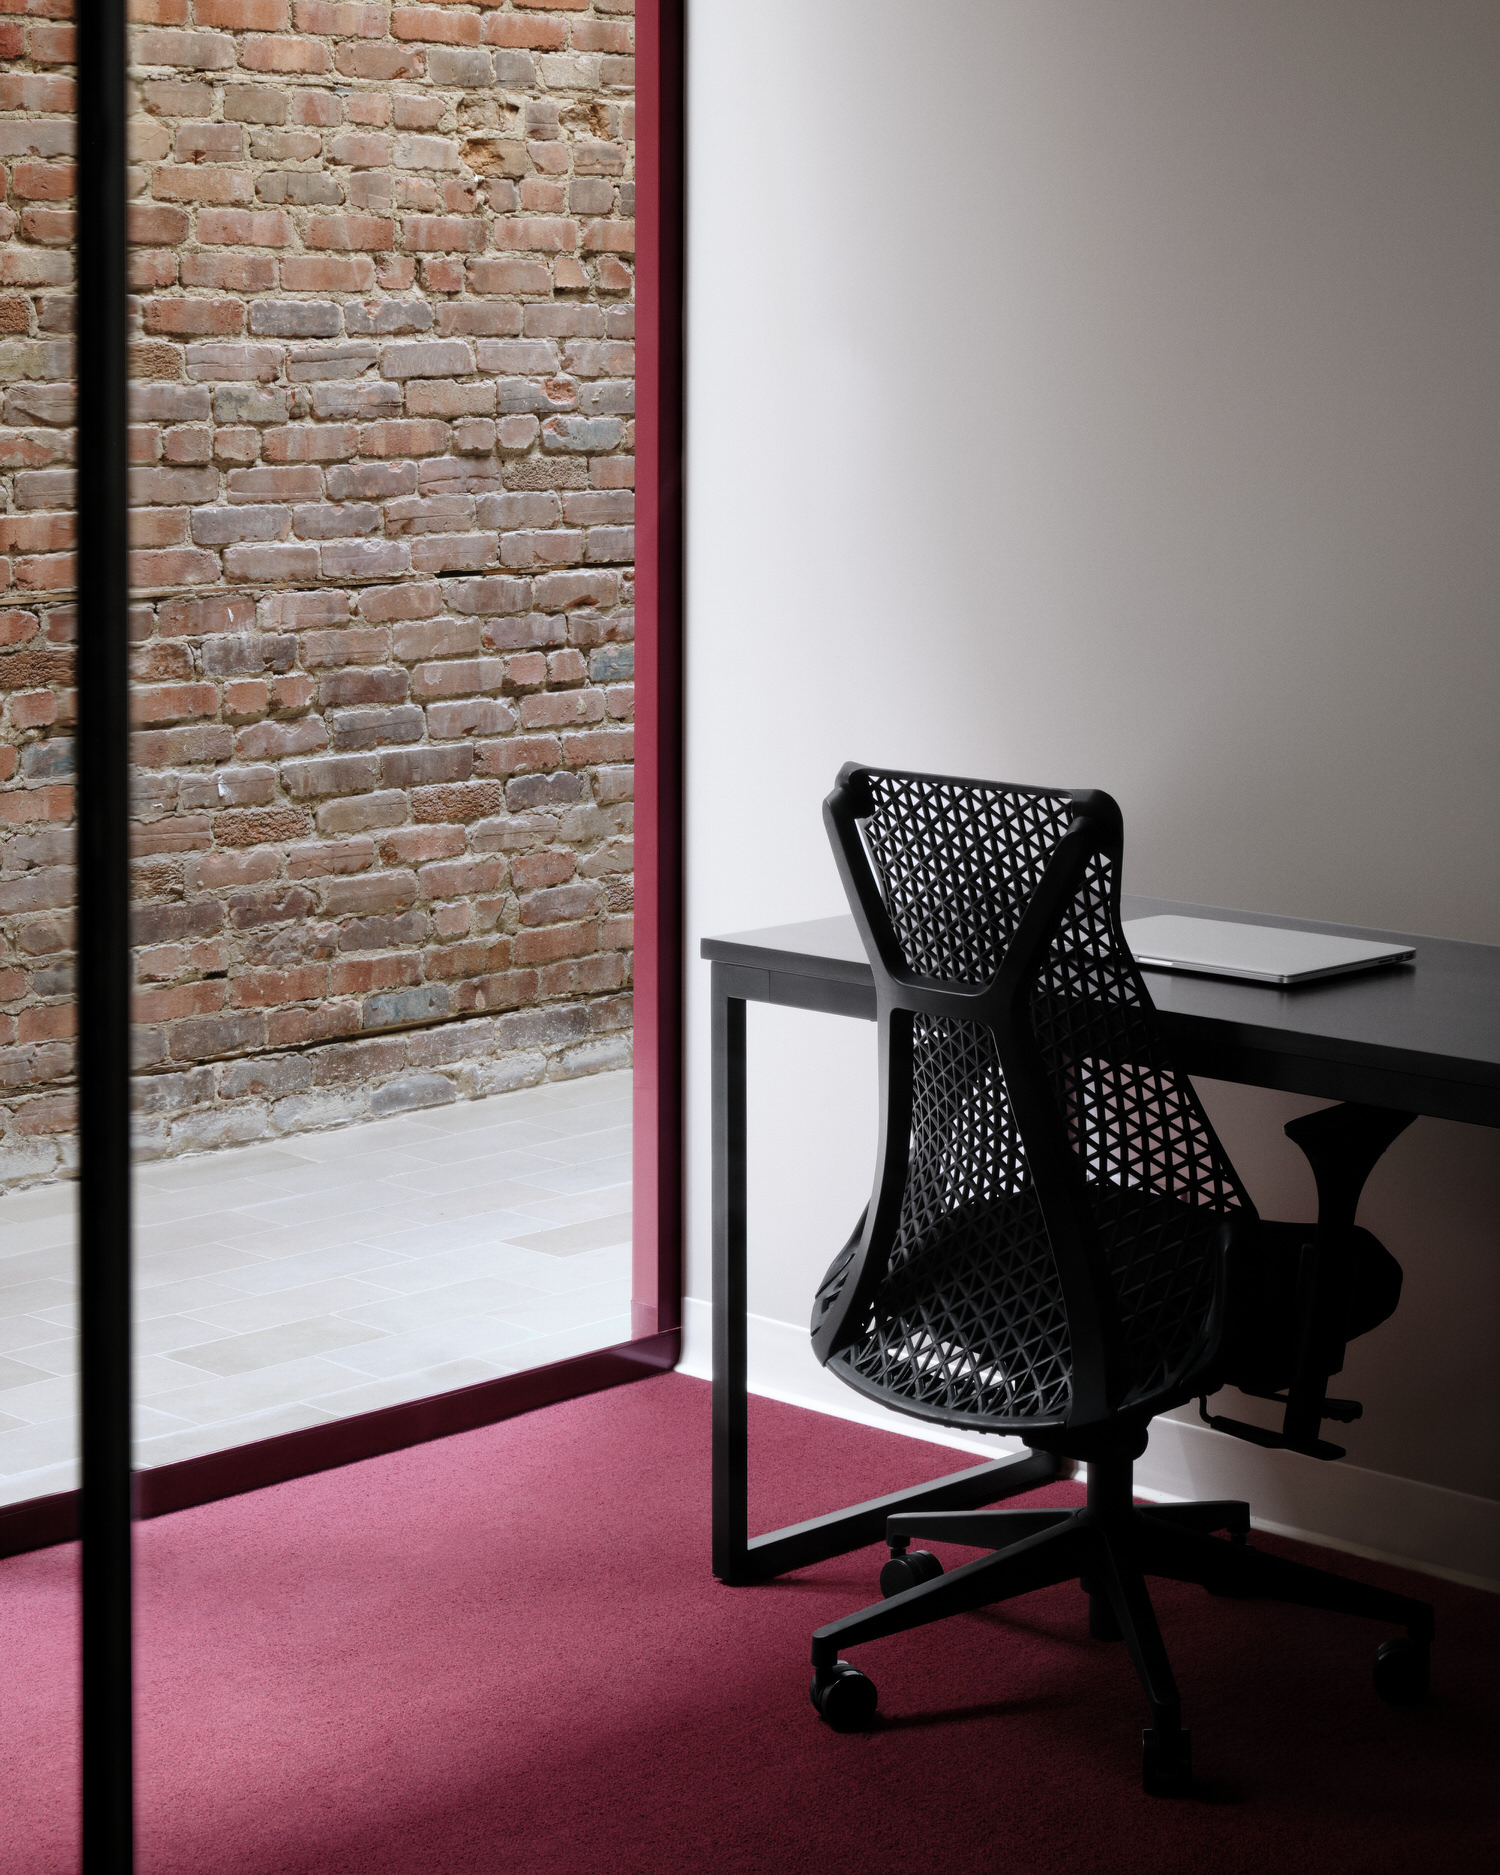 Ivy Studio Spacial Coworking Office Montreal Photo Alex Lesage Yellowtrace 18